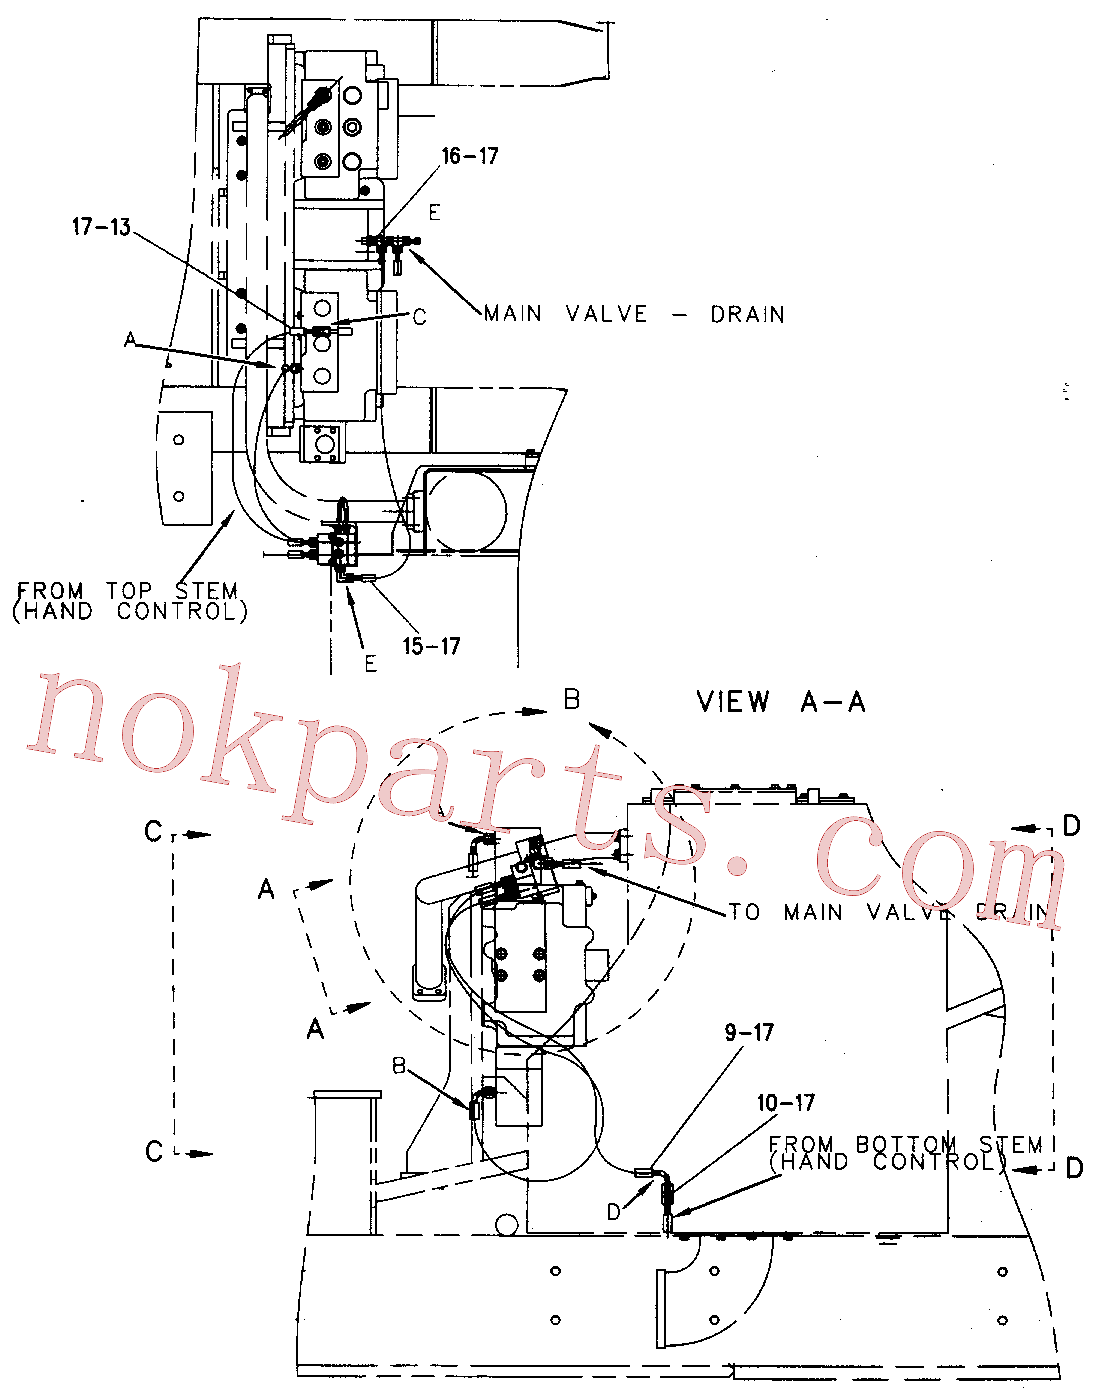 CAT 7X-2538 for TH82 Telehandler(TMH) hydraulic system 136-7103 Assembly